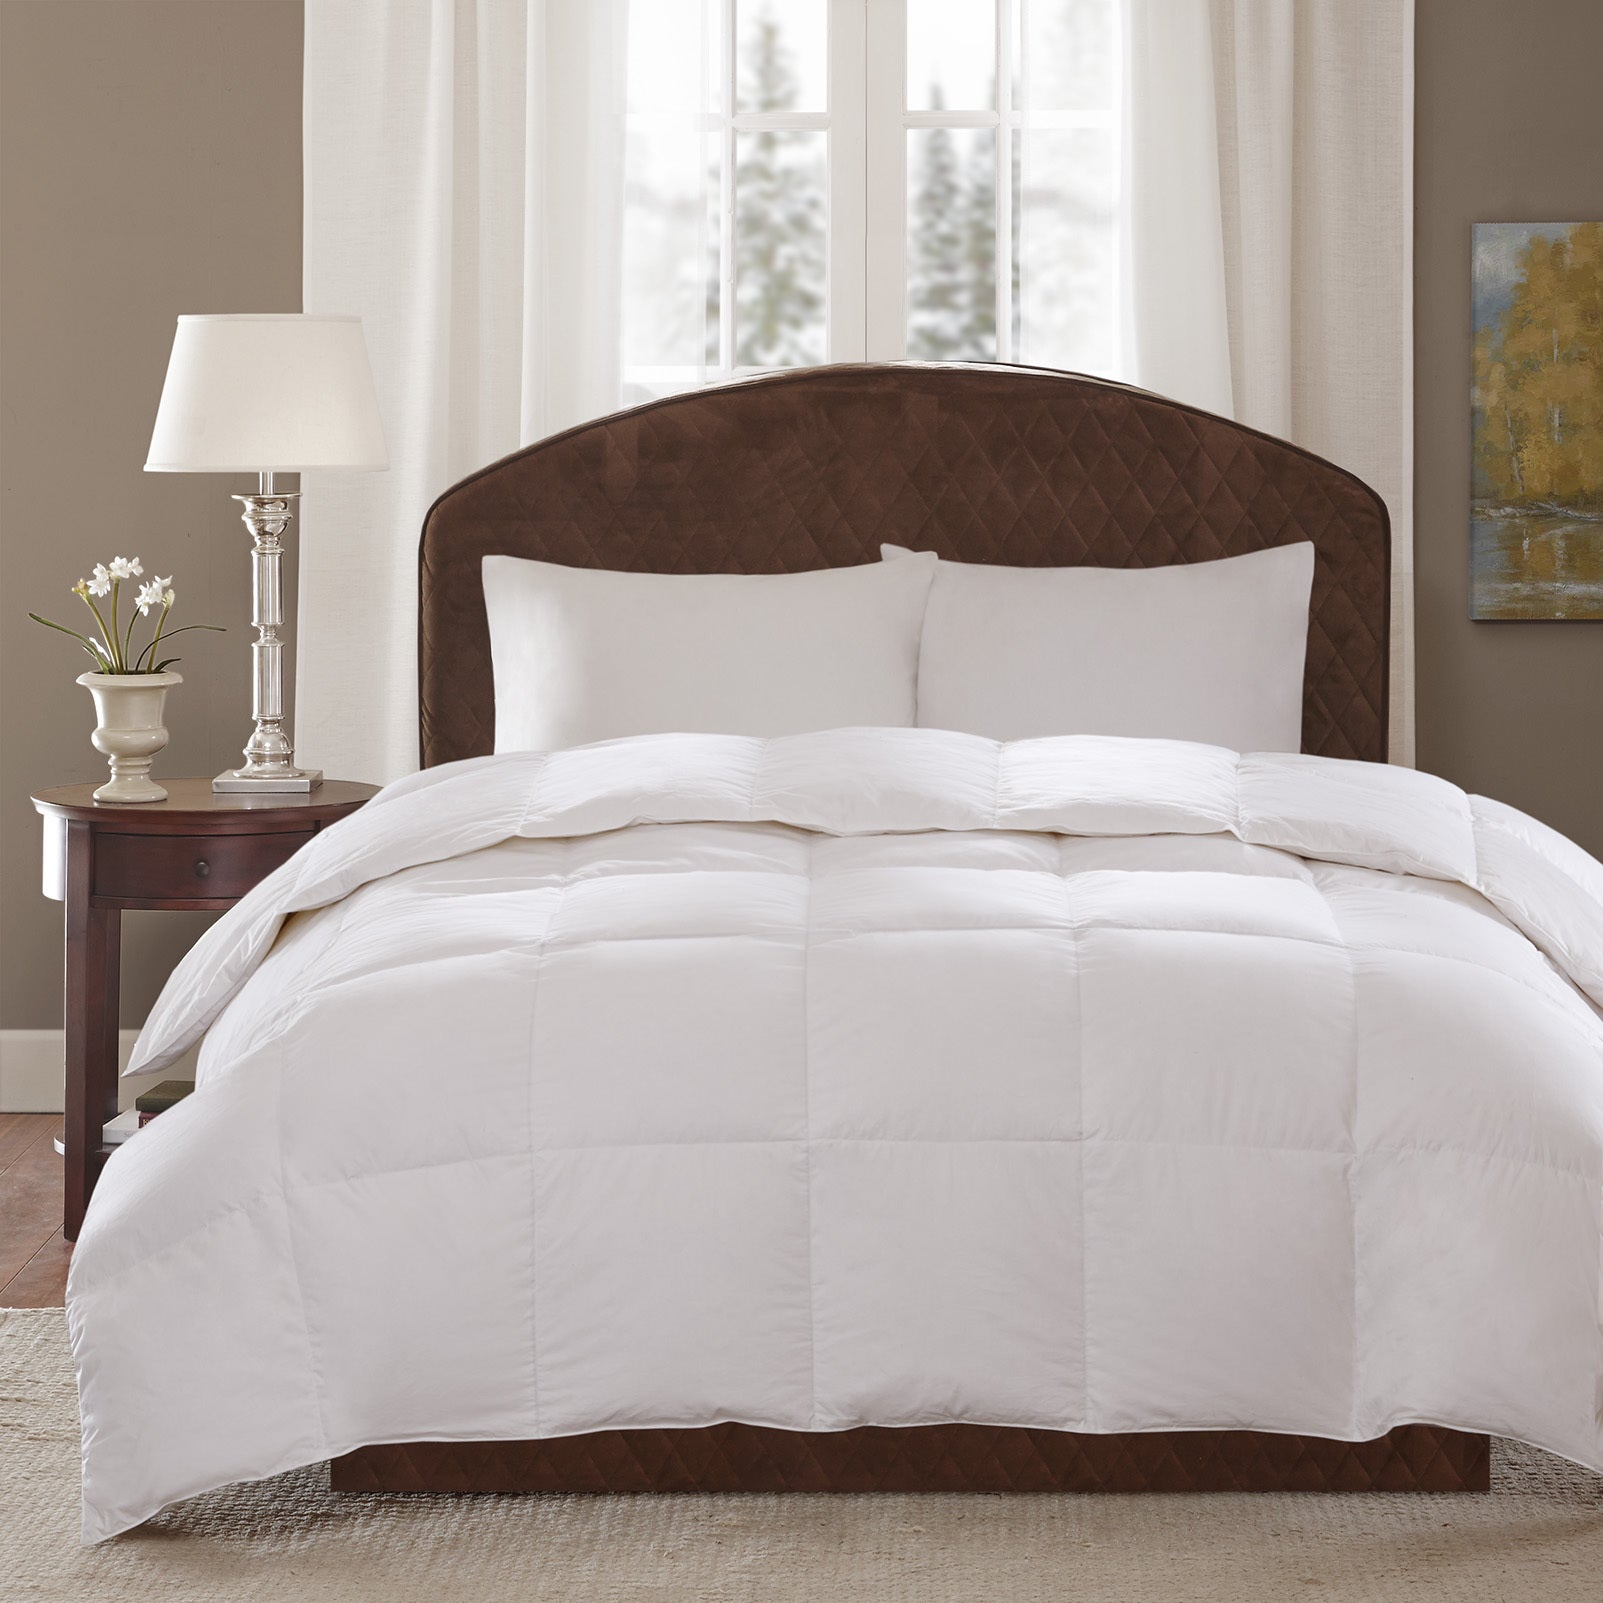 luxurious detail sleep ravello pintuck soft crinkles minimalist number hand for pin crinkle features comfort the super set piece gorgeous on bedroom this microfiber providing comforter tucking